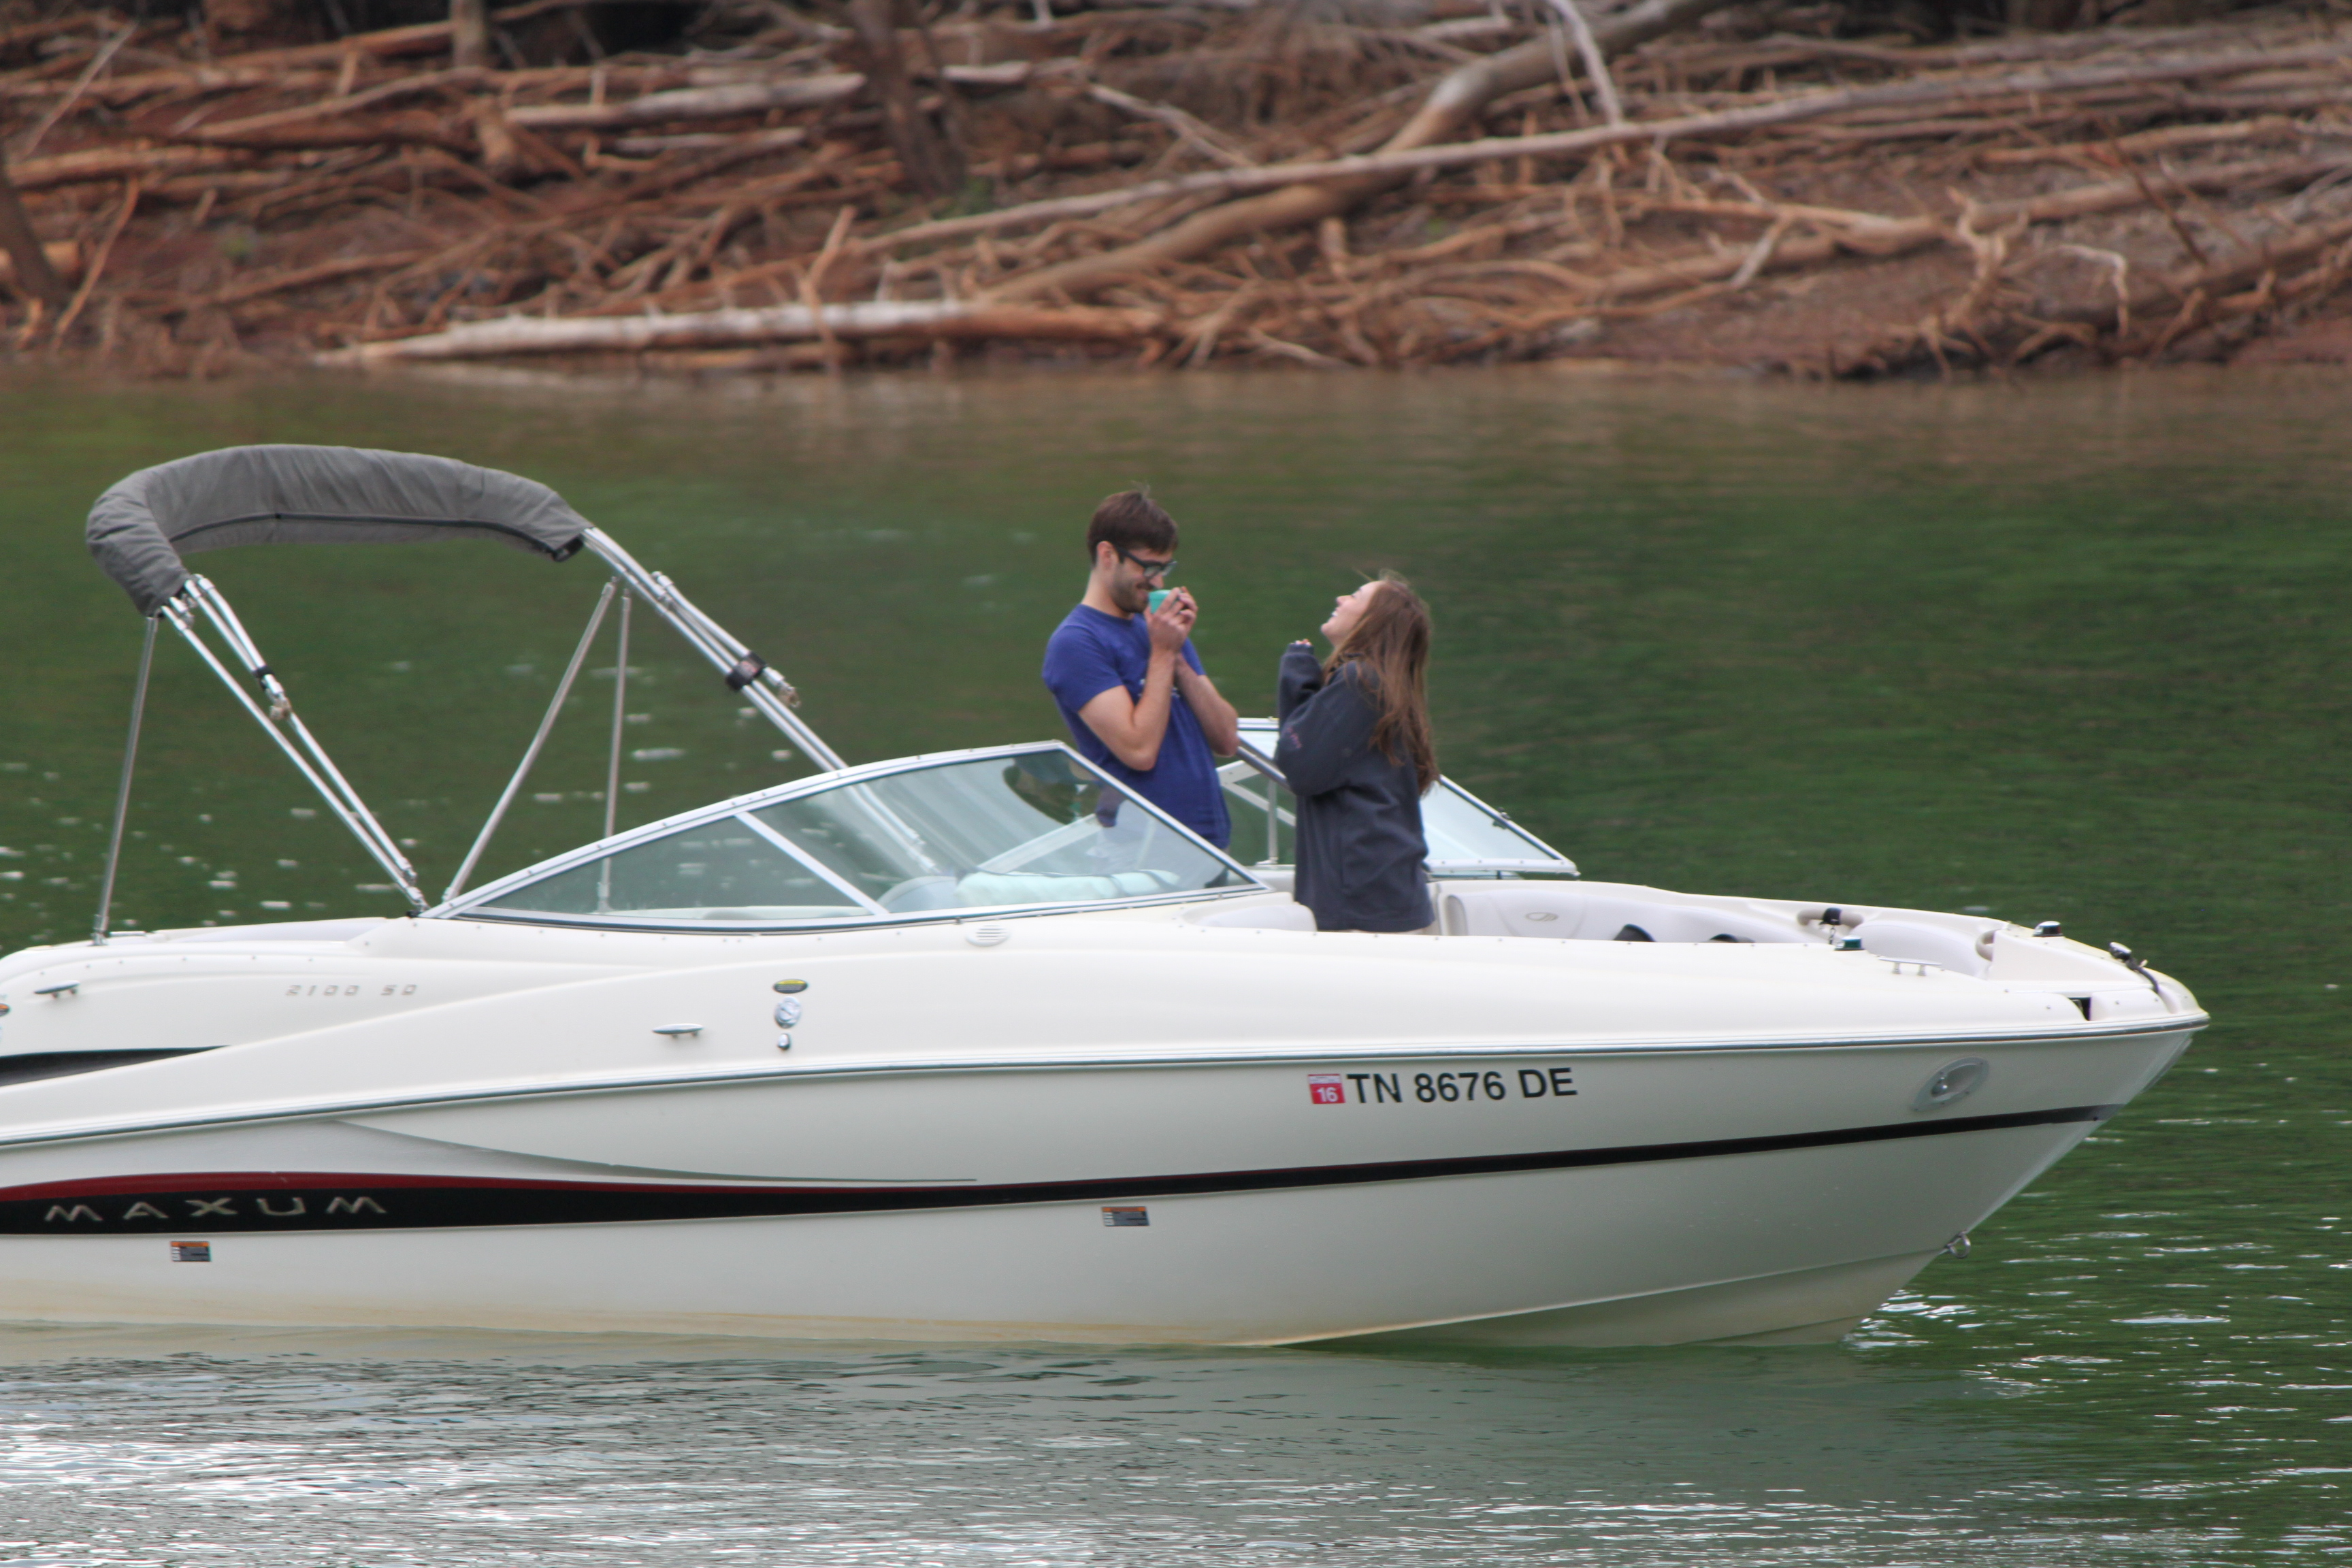 Image 6 of Lauren and Adam's Proposal on the Boat